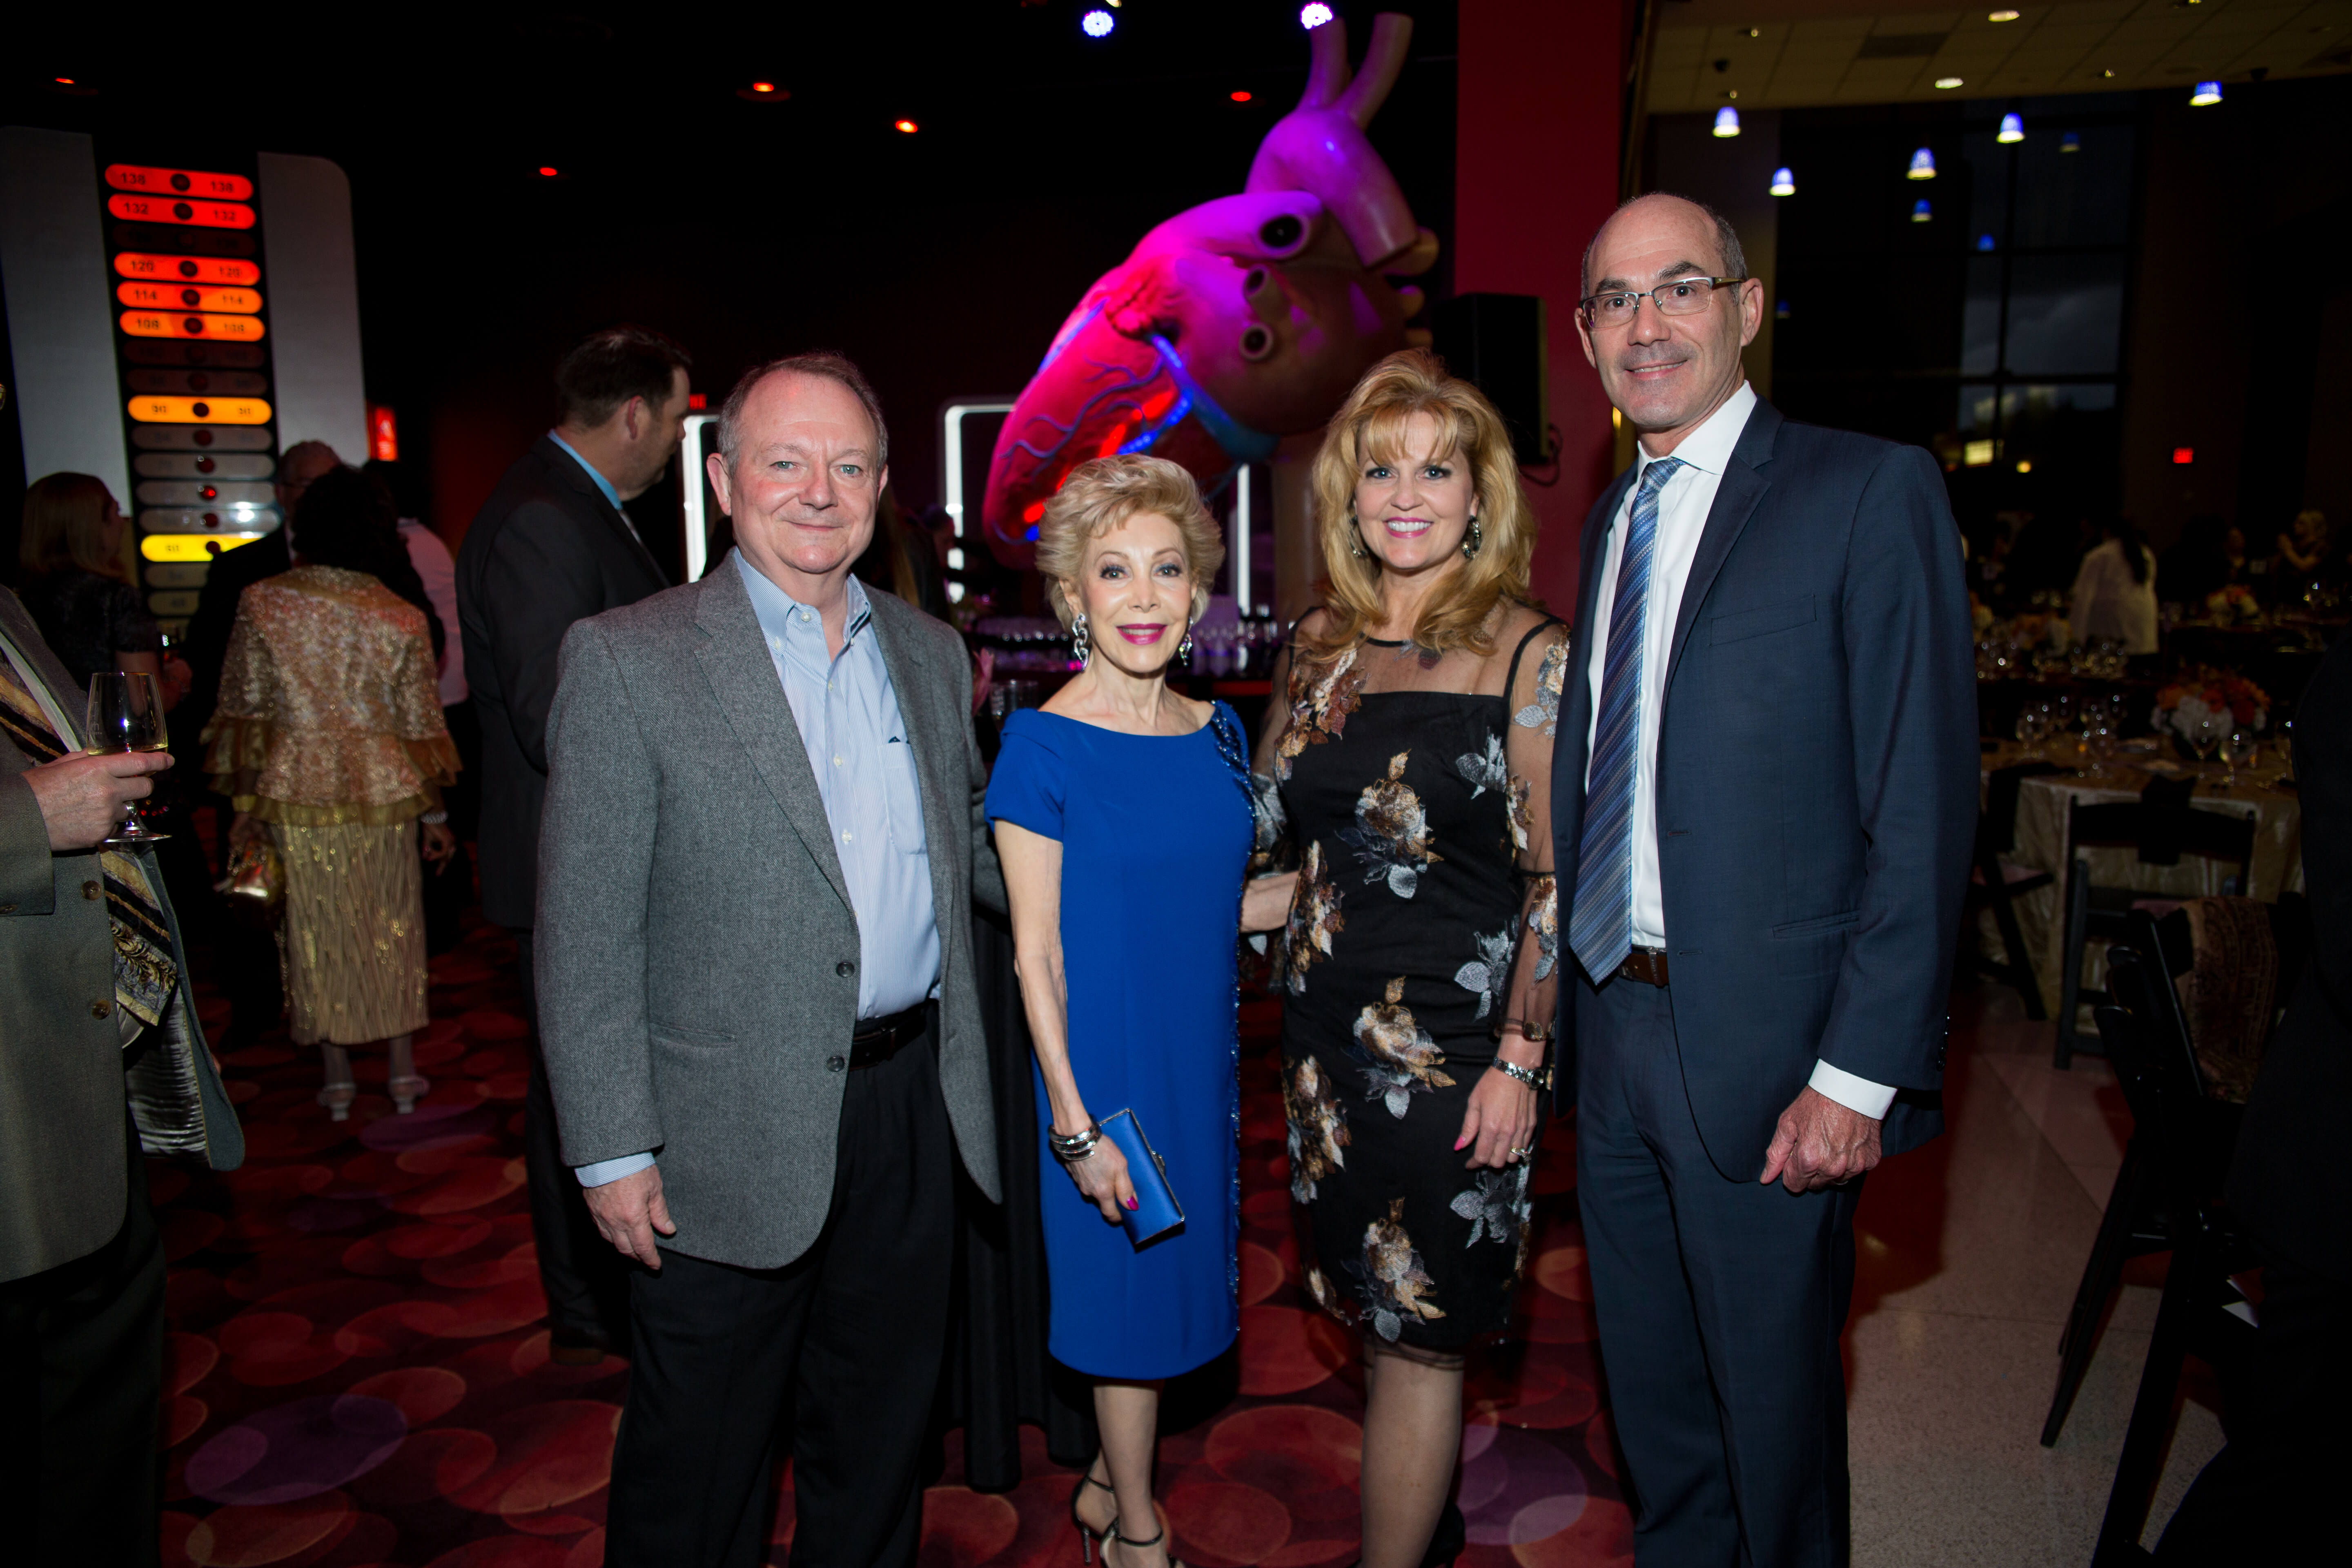 Houston philanthropist Margaret Alkek Williams, second from left, with John Arcidiacono, right, president and CEO of The Health Museum.